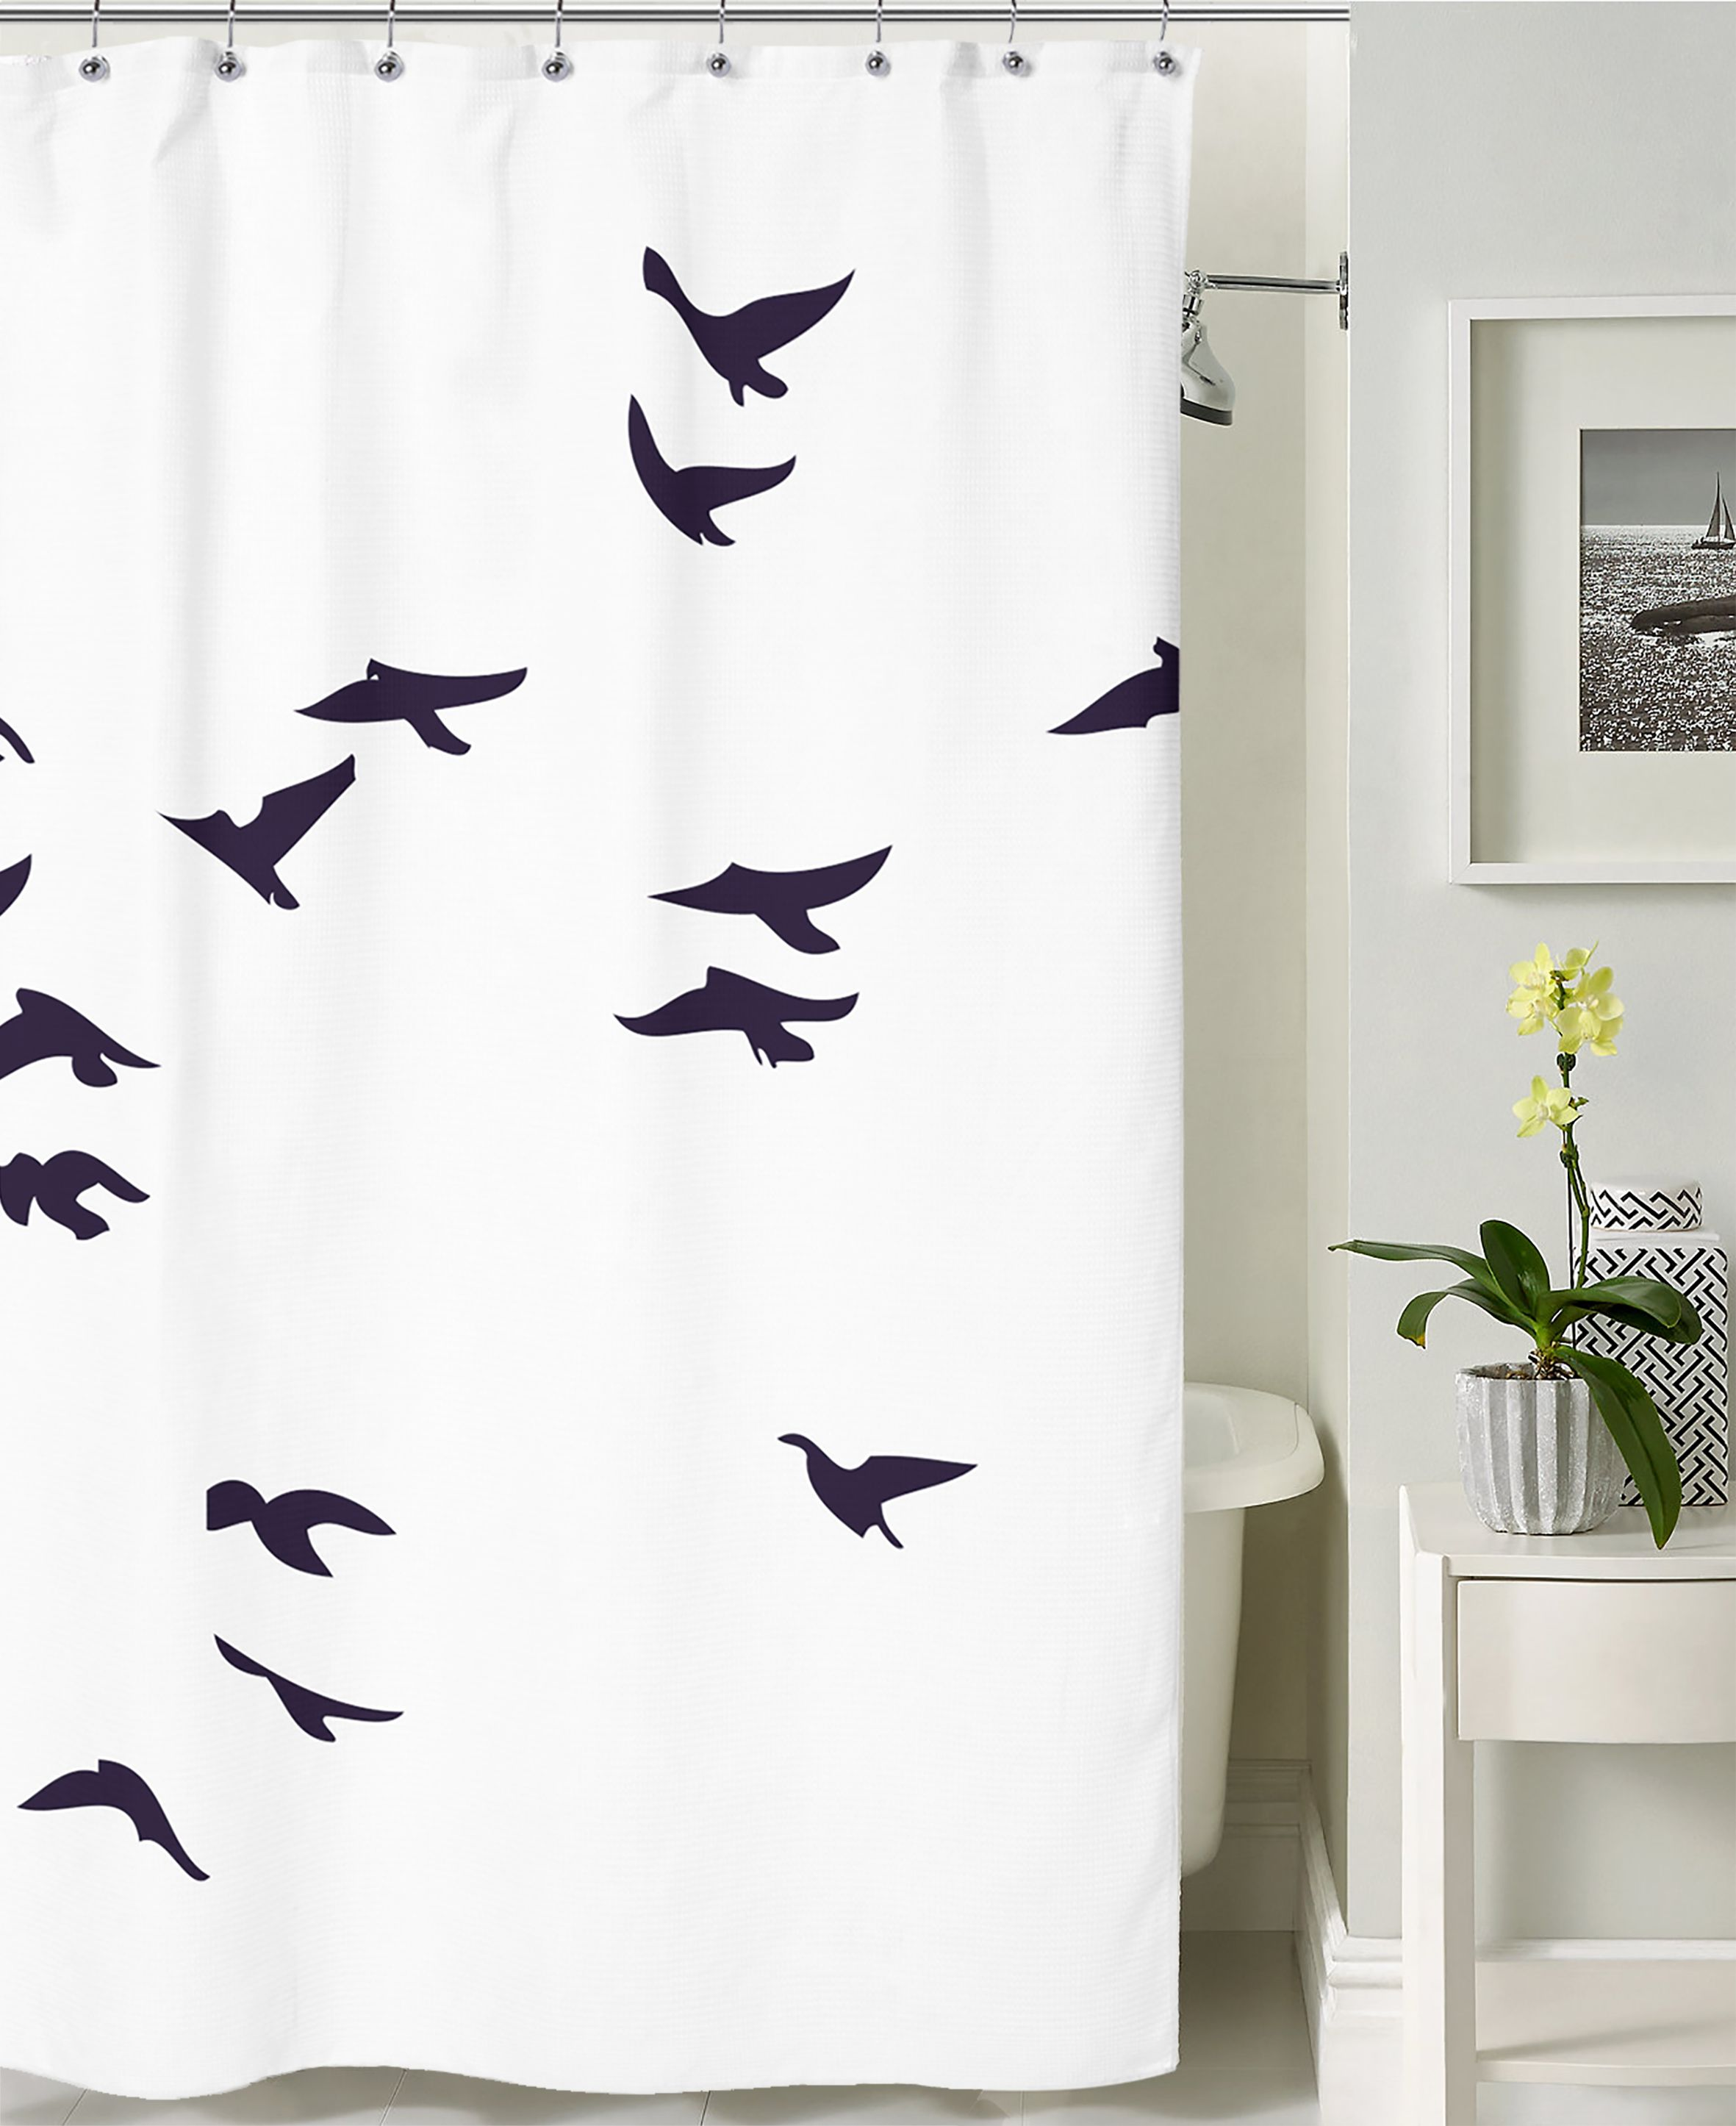 Small Birds Shower Curtain Size L 200 Cm W 180 Cm Shower